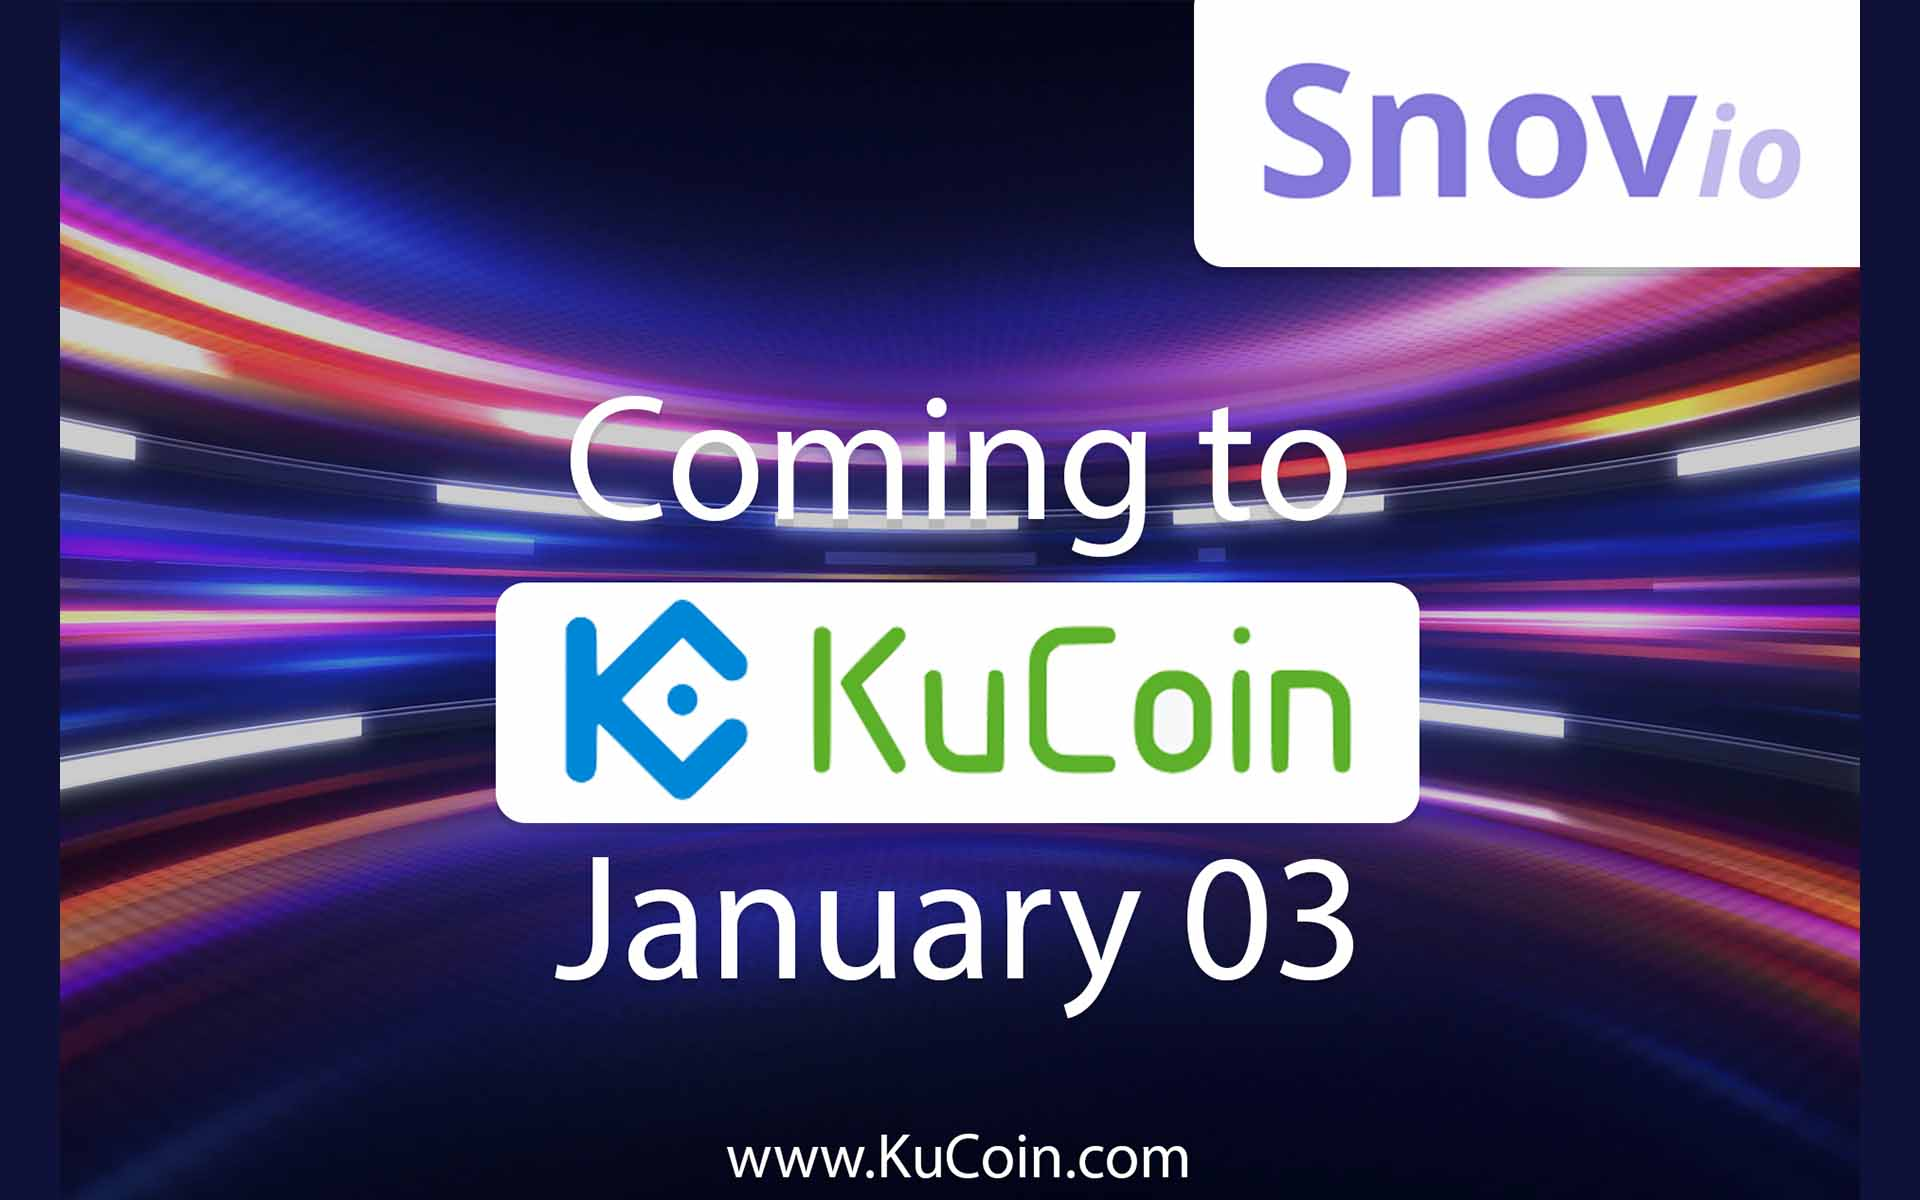 Snovio Lead Generation for the Blockchain Gets Released on KuCoin